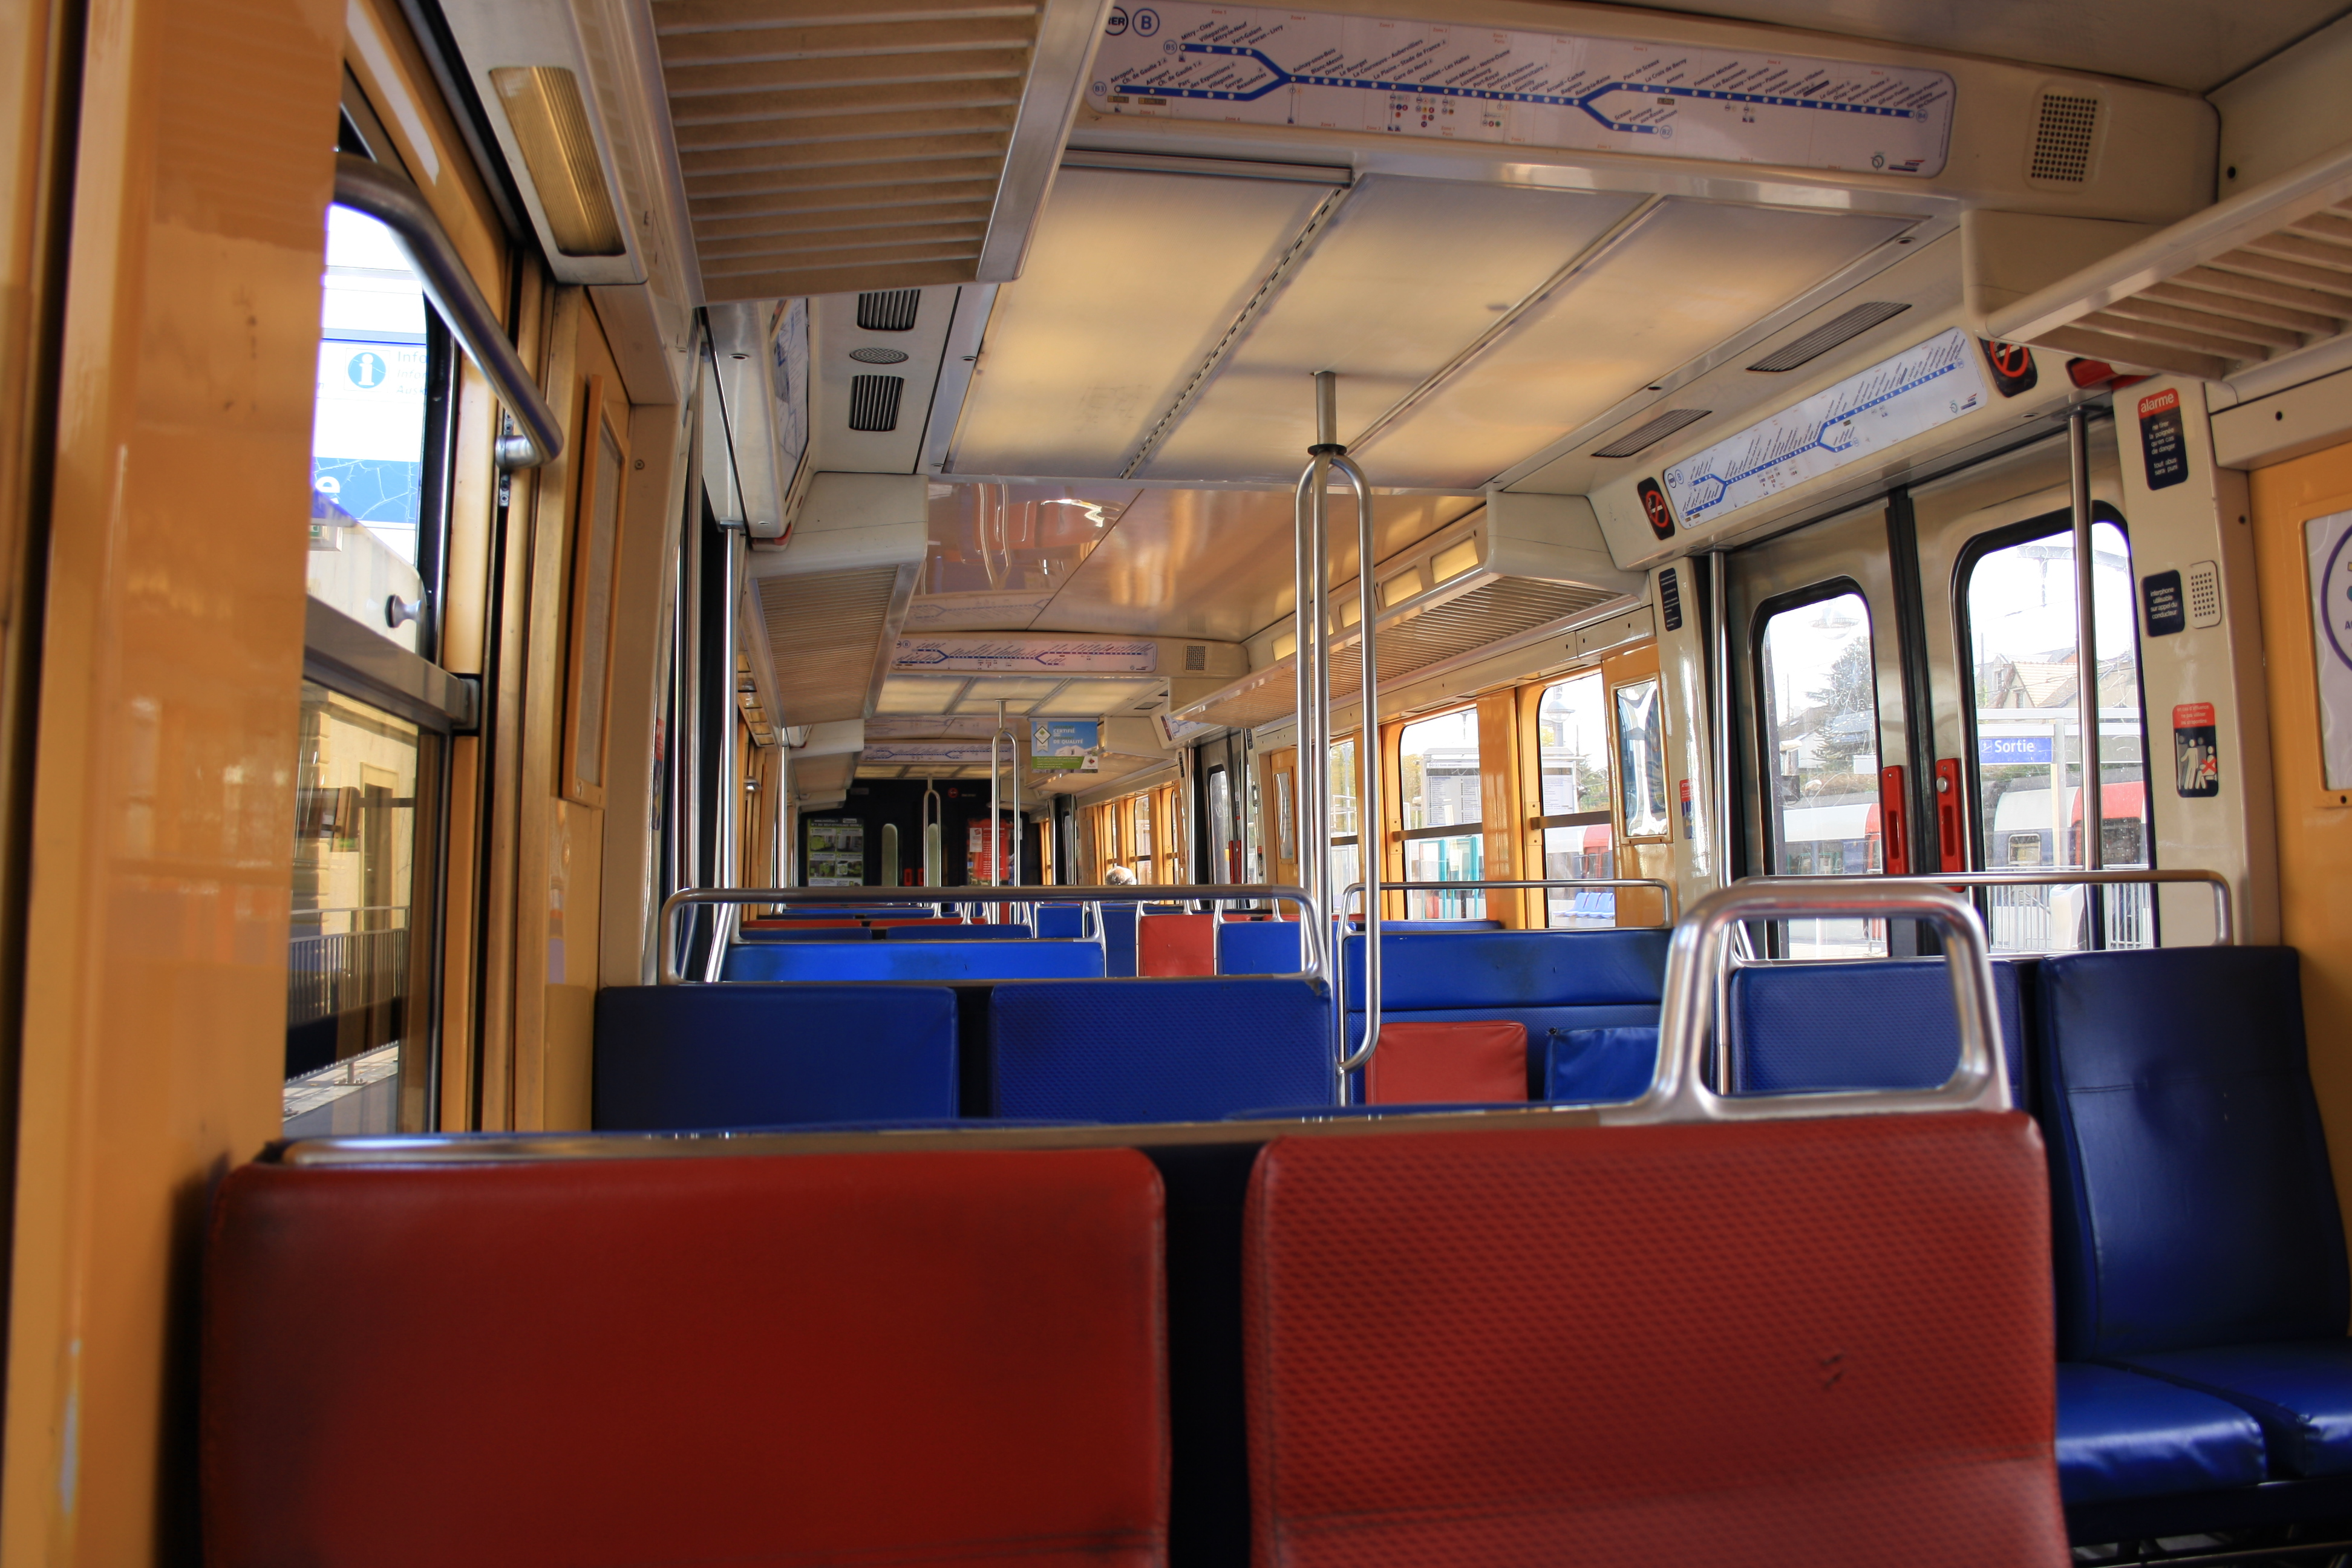 File rer b interieur wikimedia commons for Interieur software